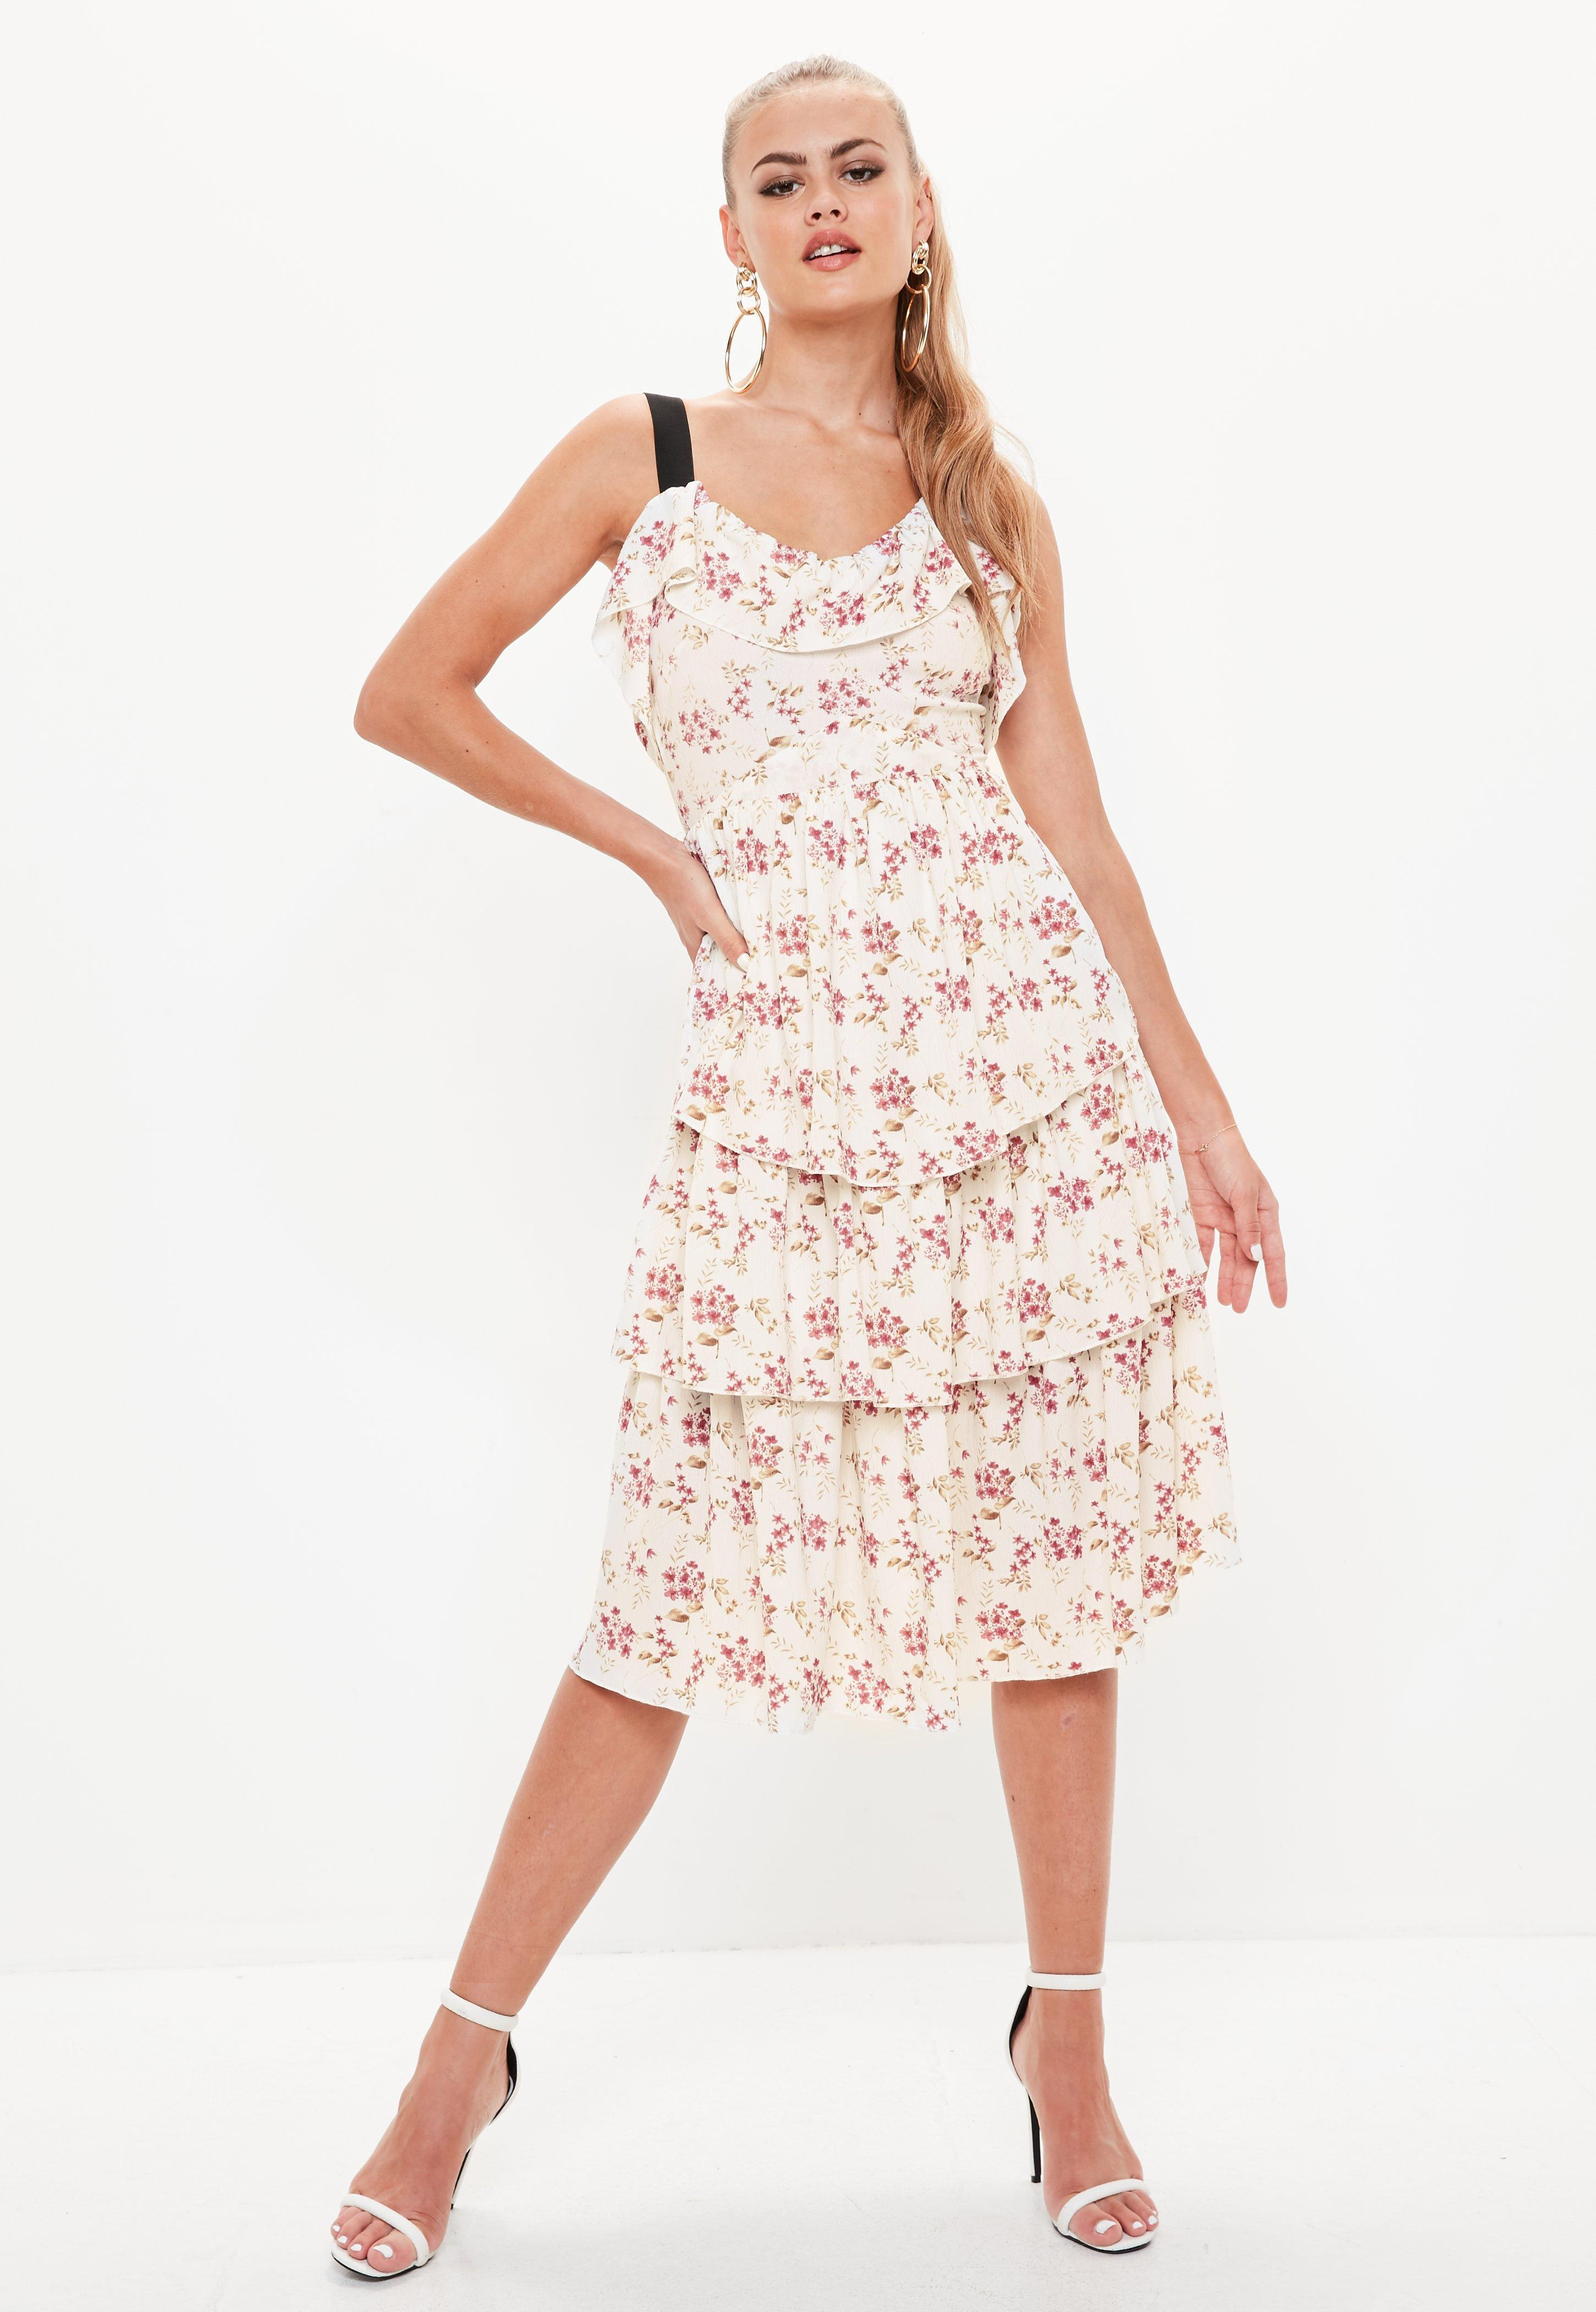 a261cd7a7 Missguided. Women's Cream Tiered Frill Floral Midi Dress